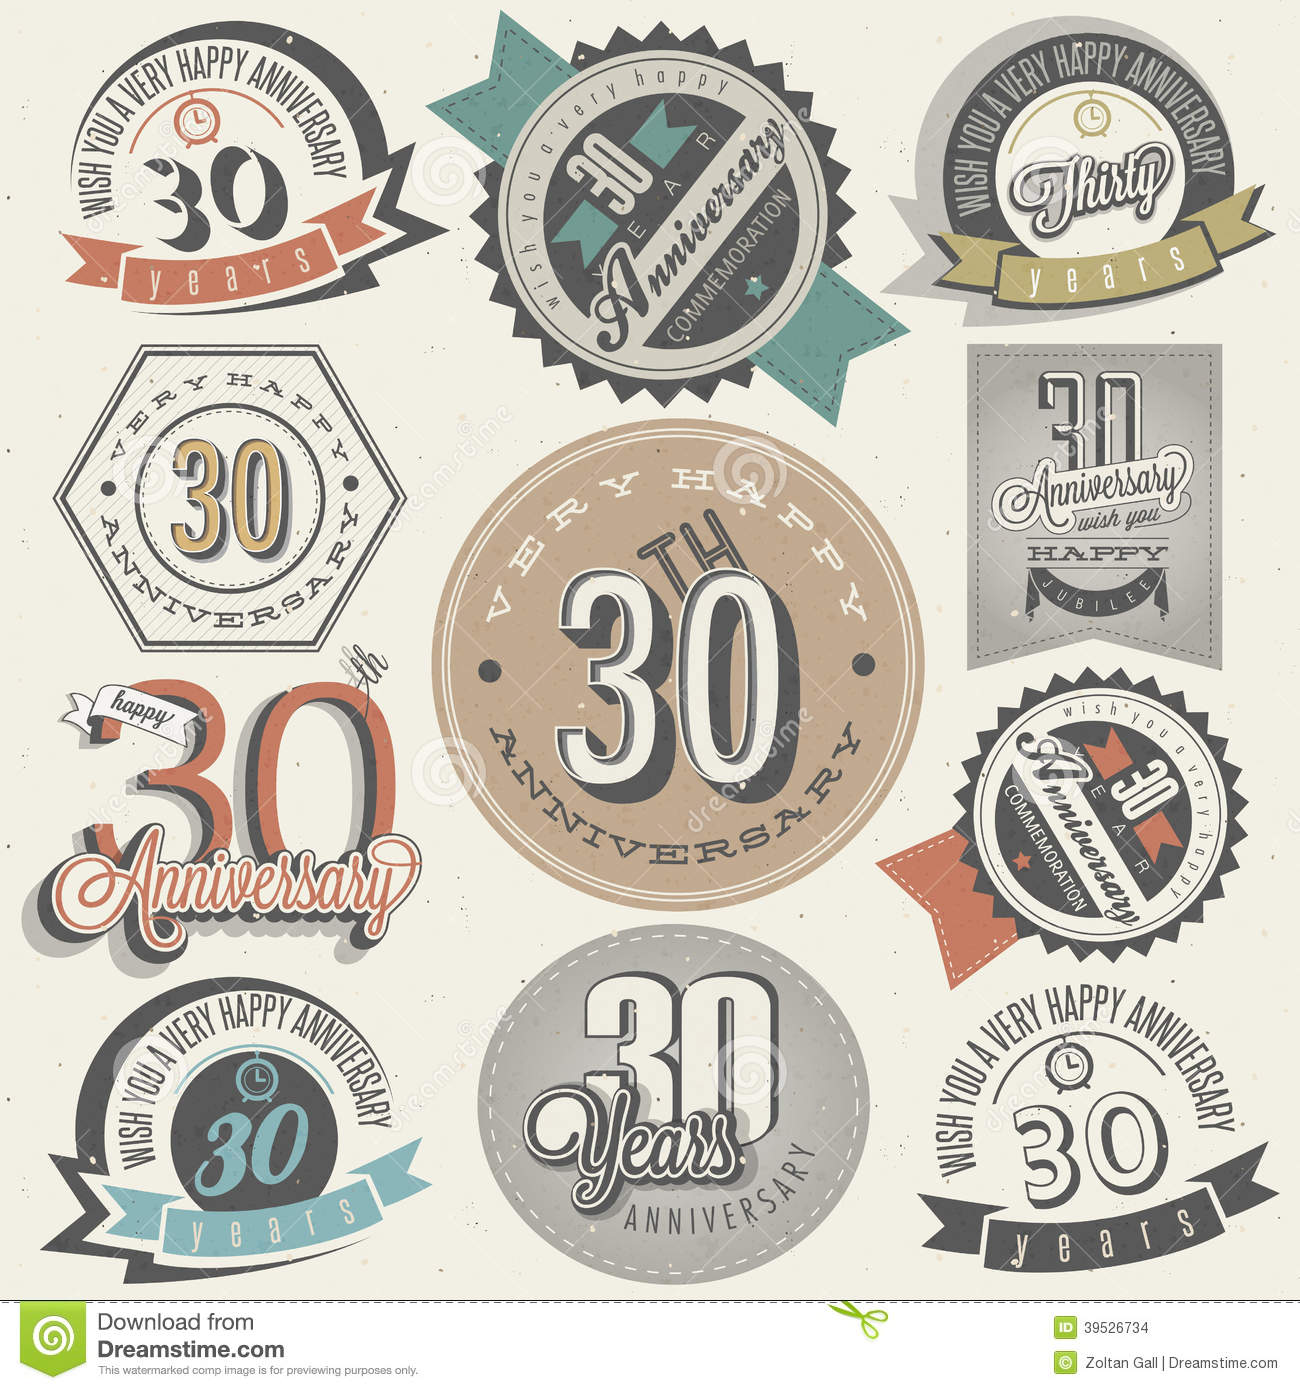 30 Year Anniversary Symbol: Vintage Style 30 Anniversary Collection